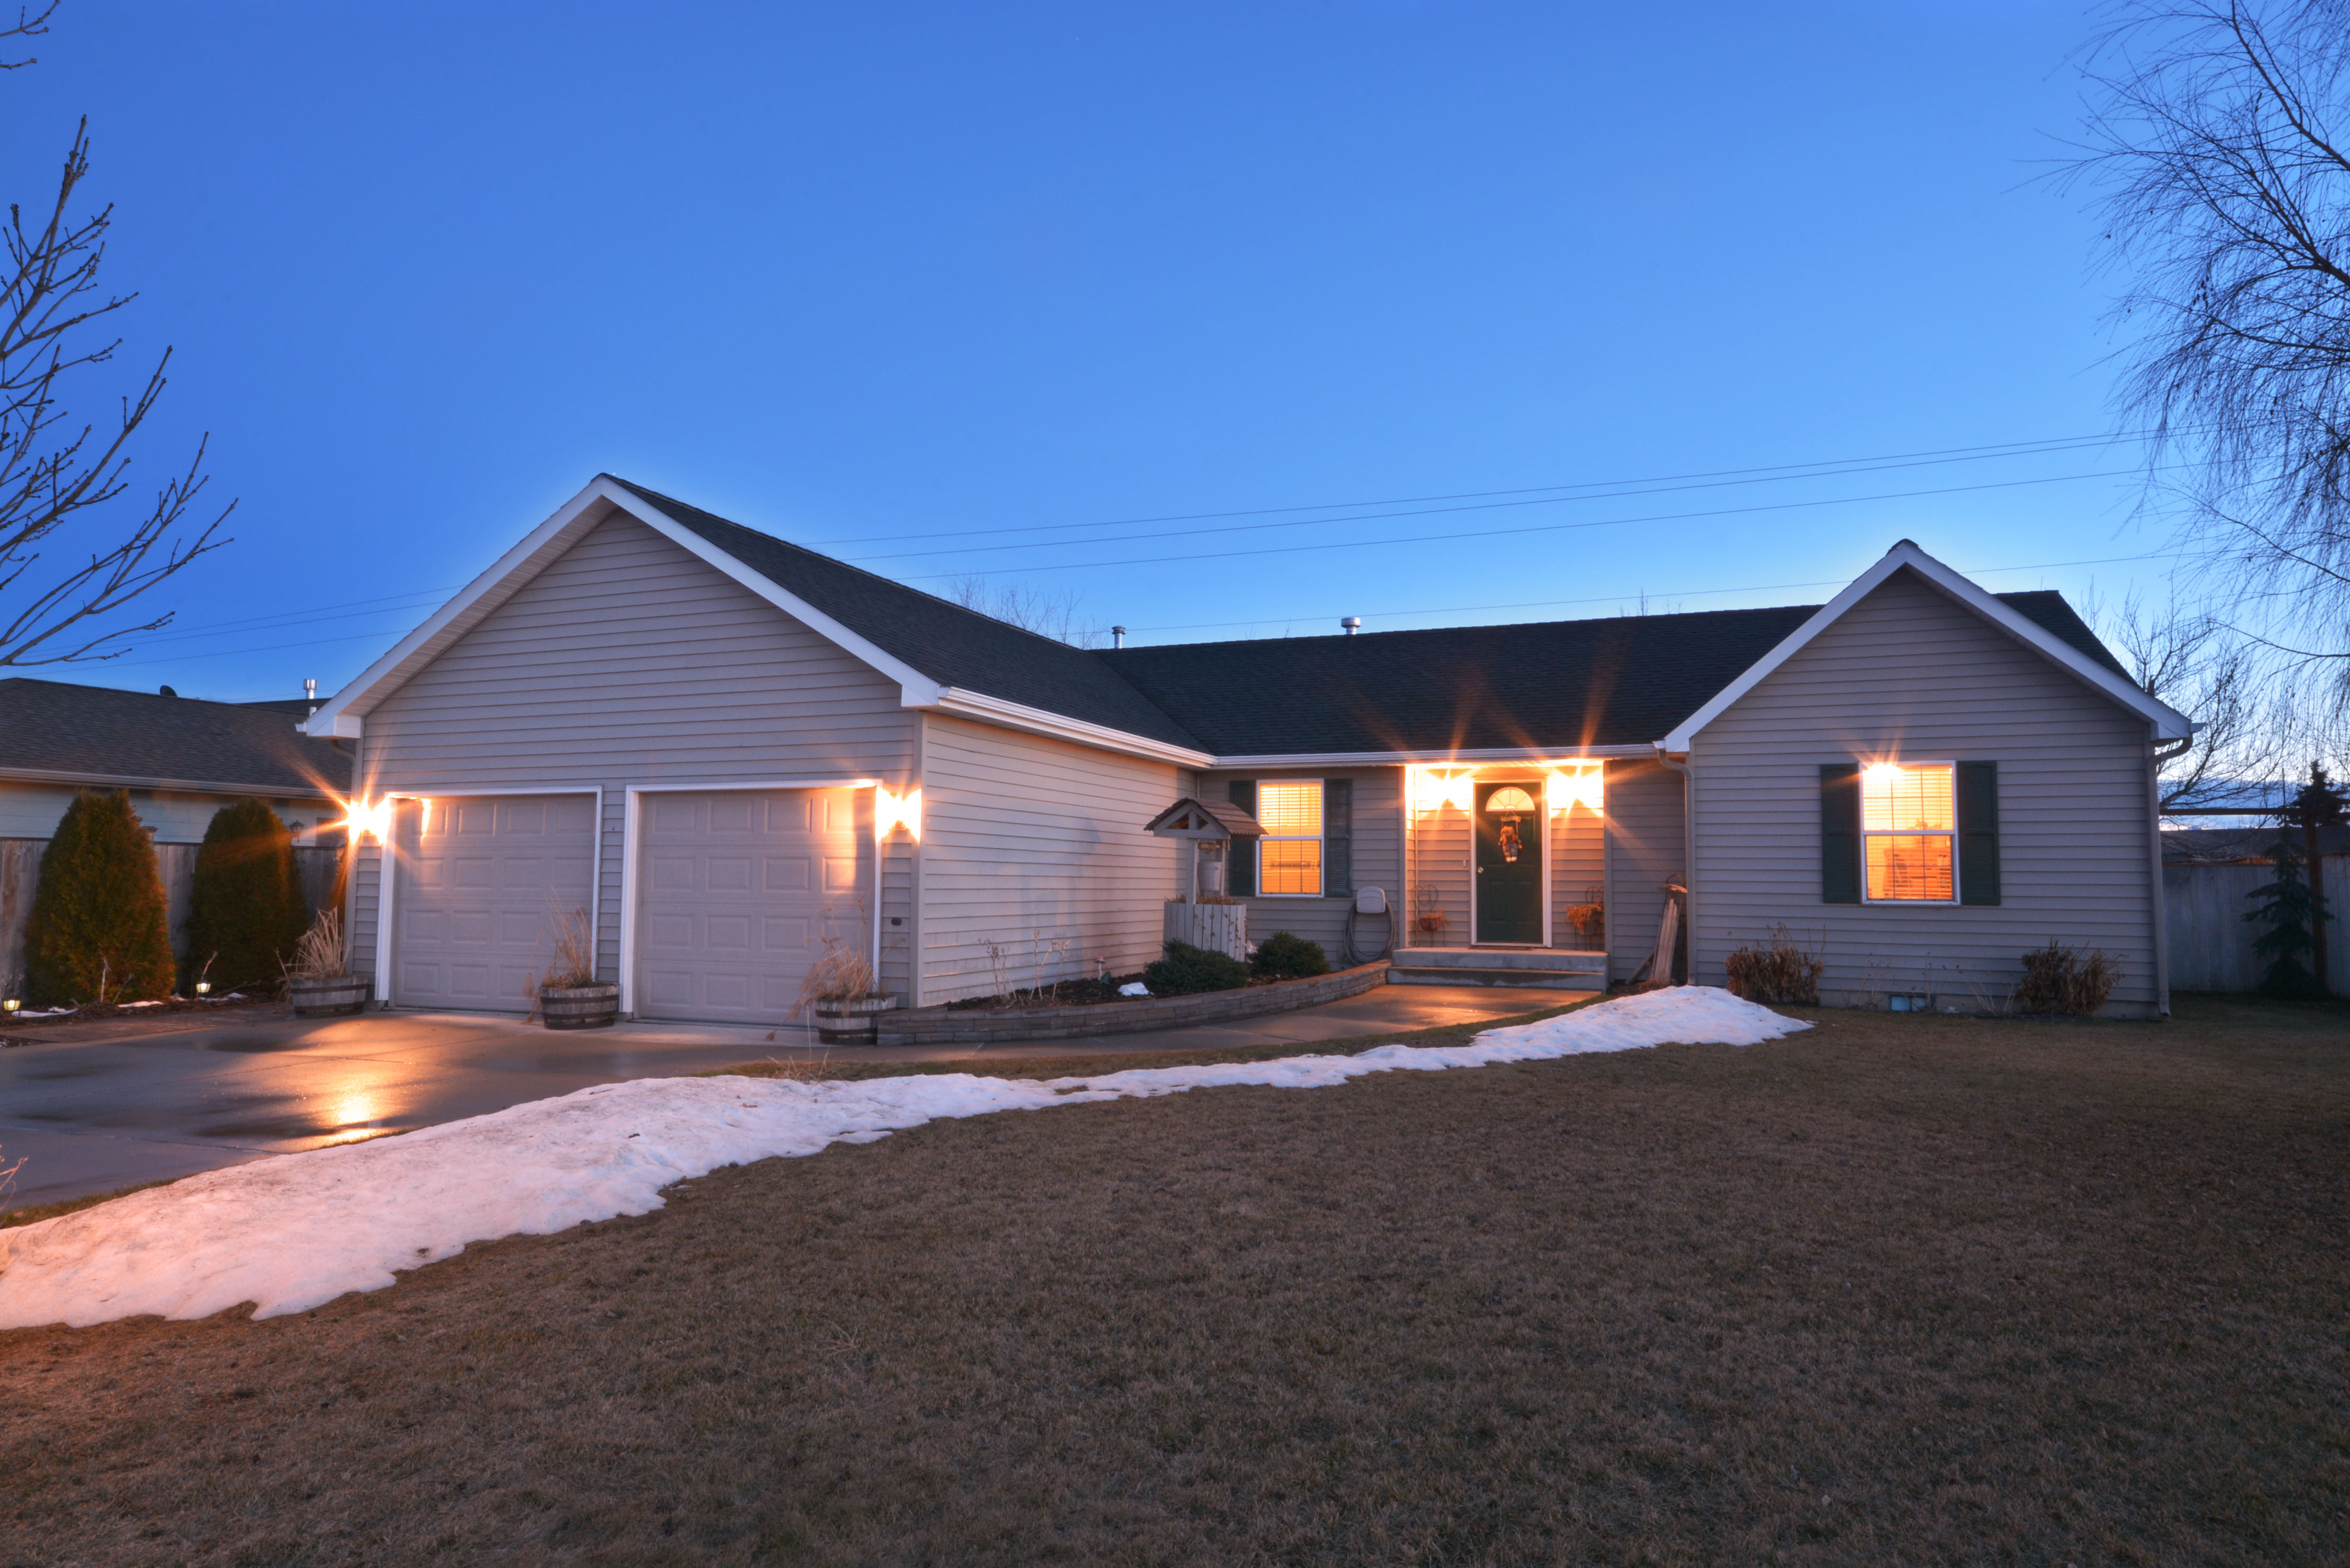 Welcome Home | 3bed/2bath Rancher in Belgrade, Montana Awaits You